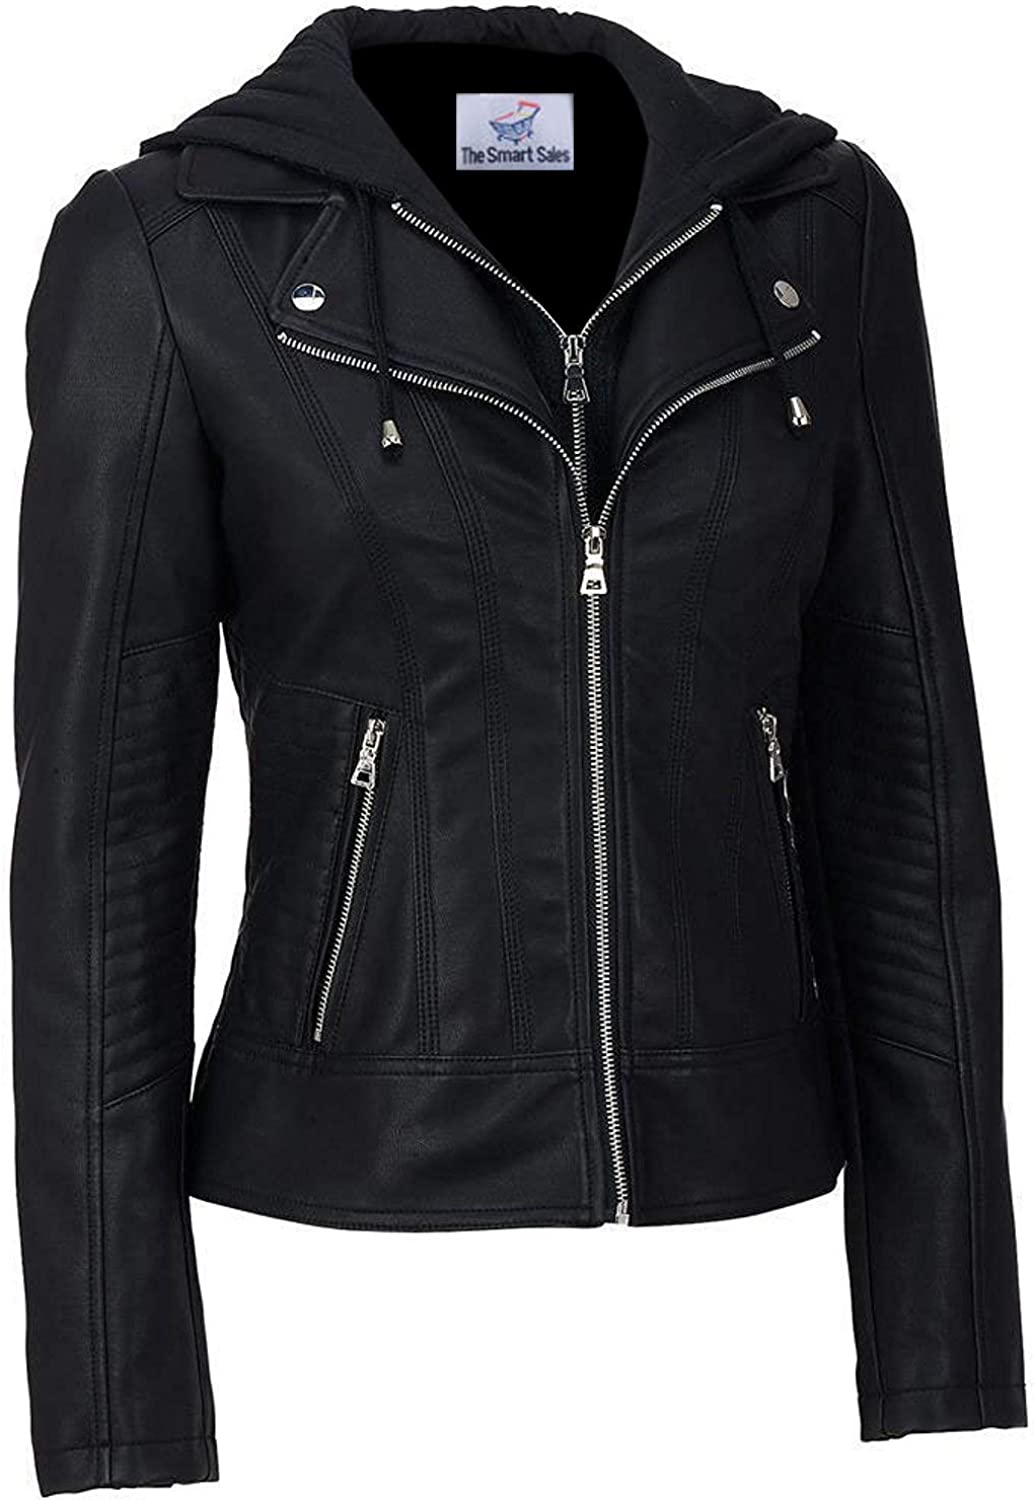 TheSmartSales Black Hooded Faux Custom Made Leather Jacket for Women